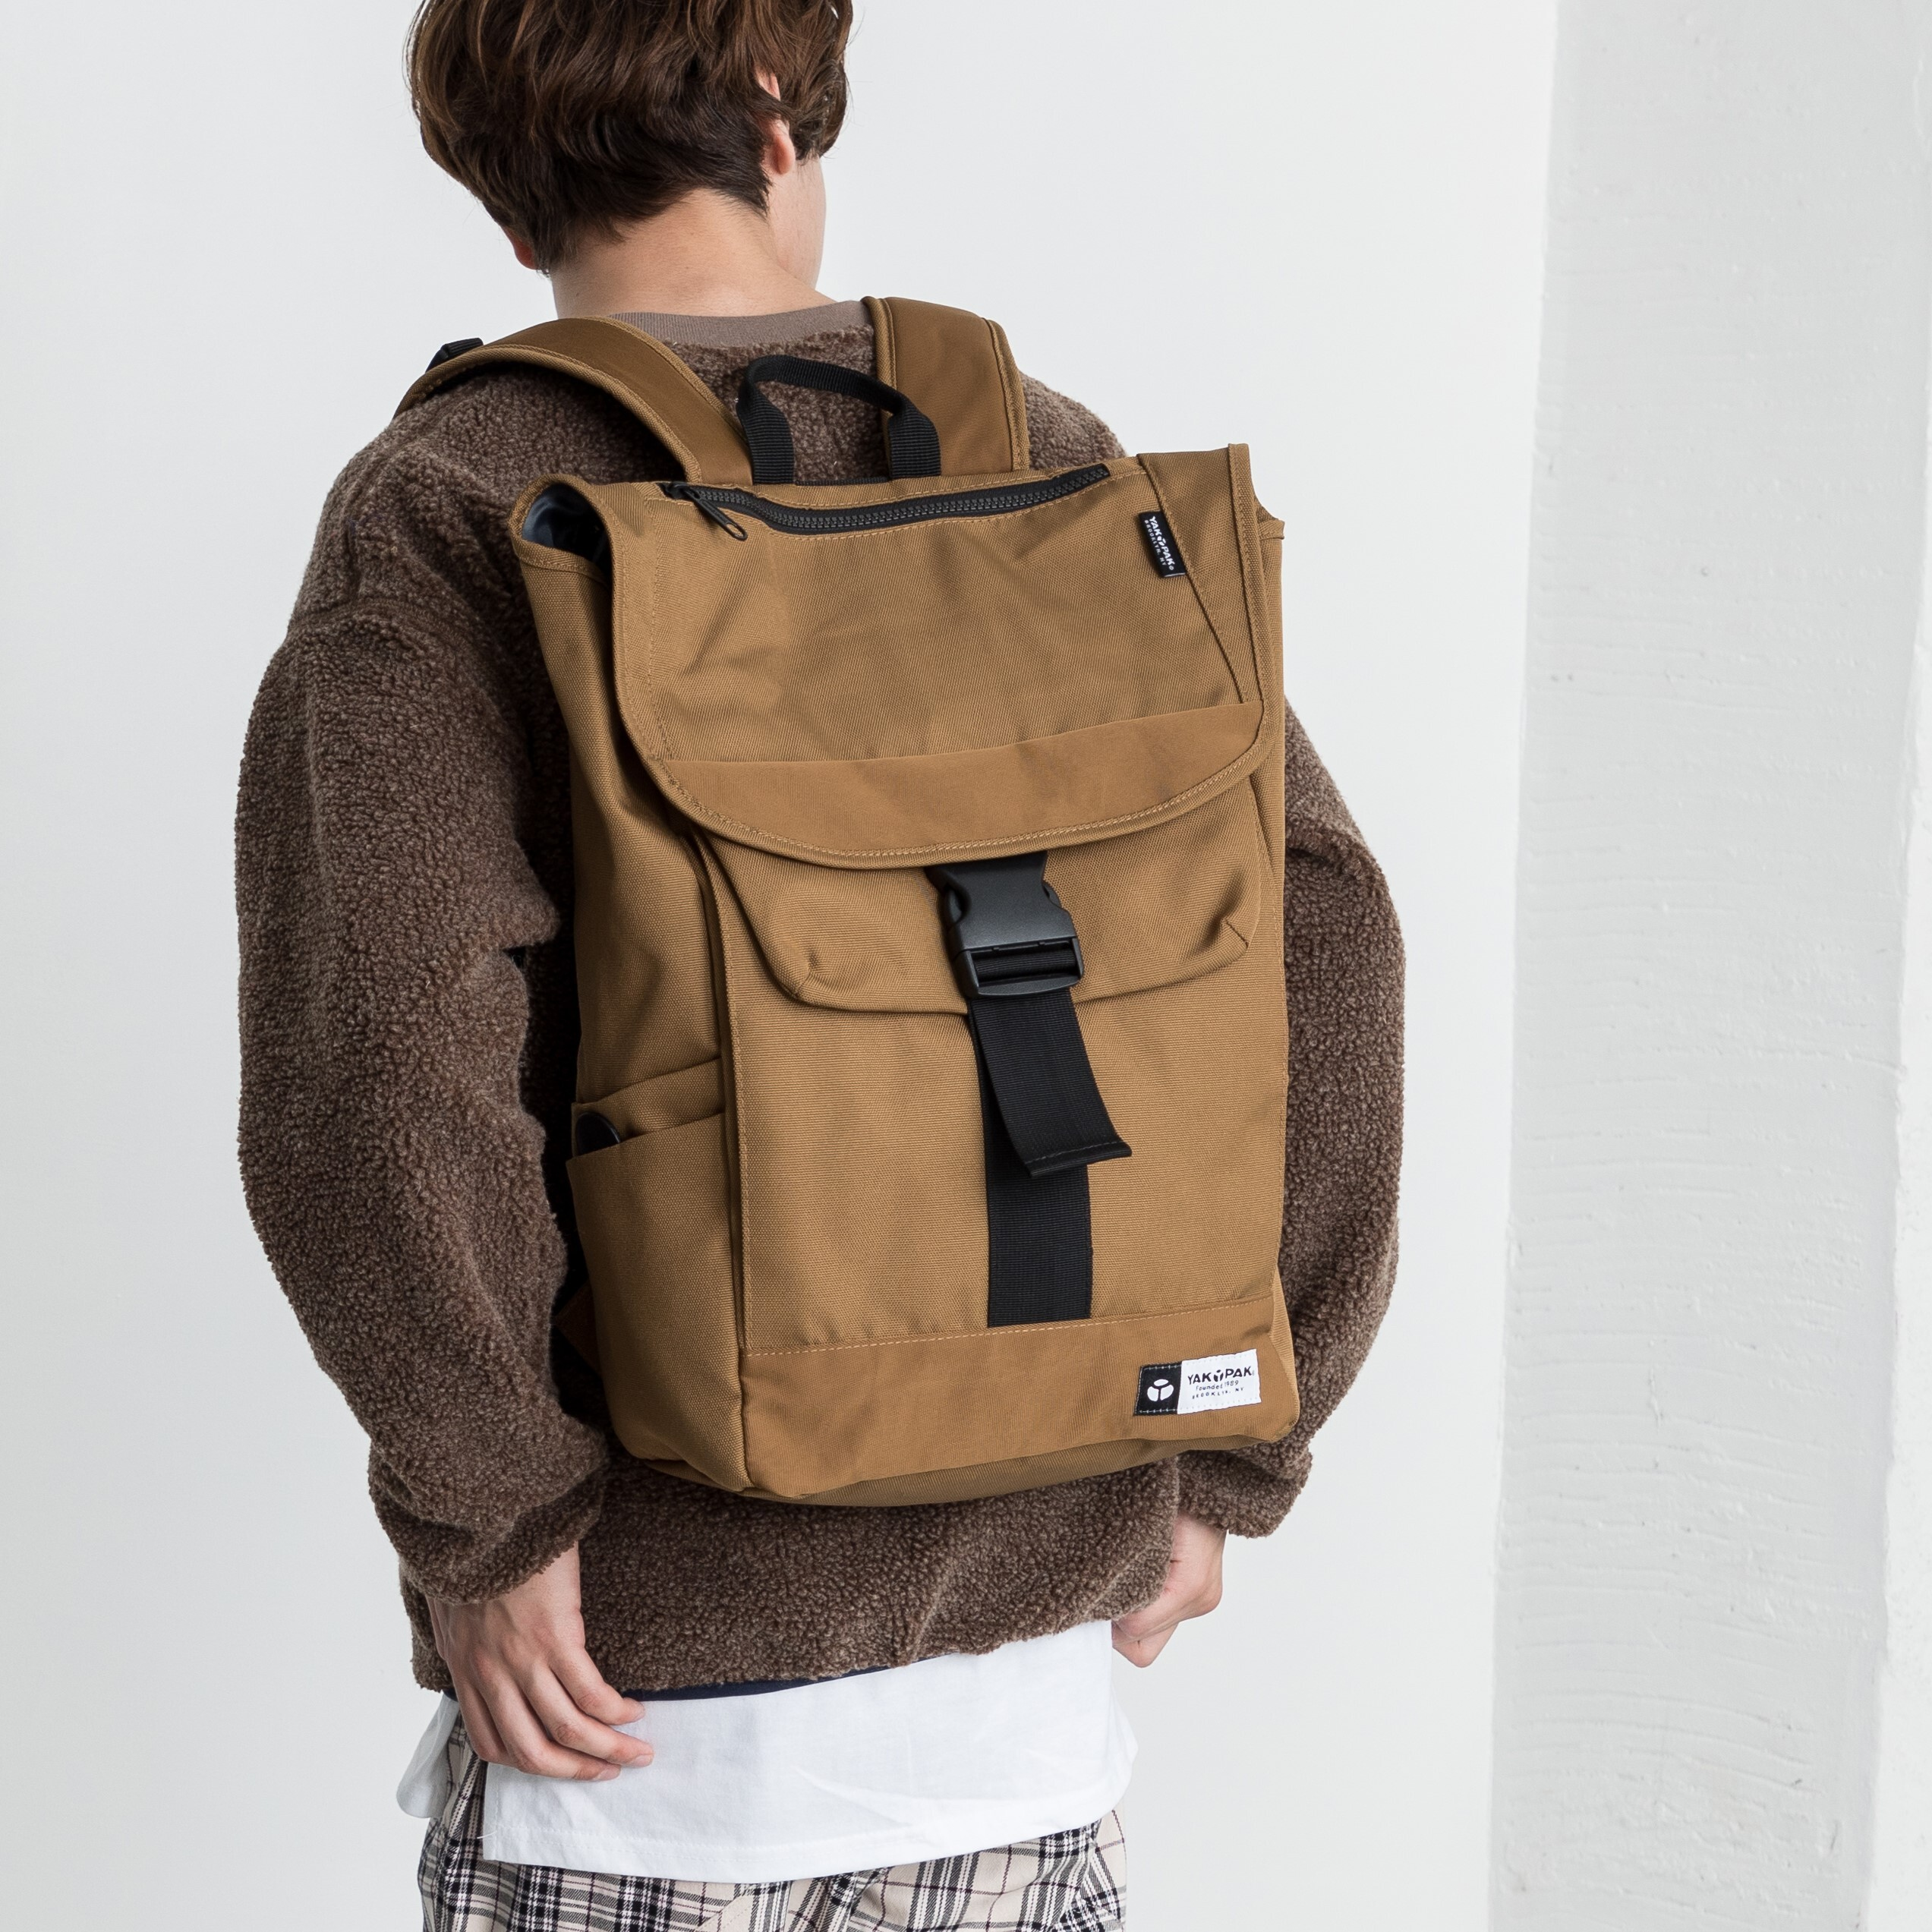 【YAK PAK】WALTER FLAP BACKPACK NO9125354